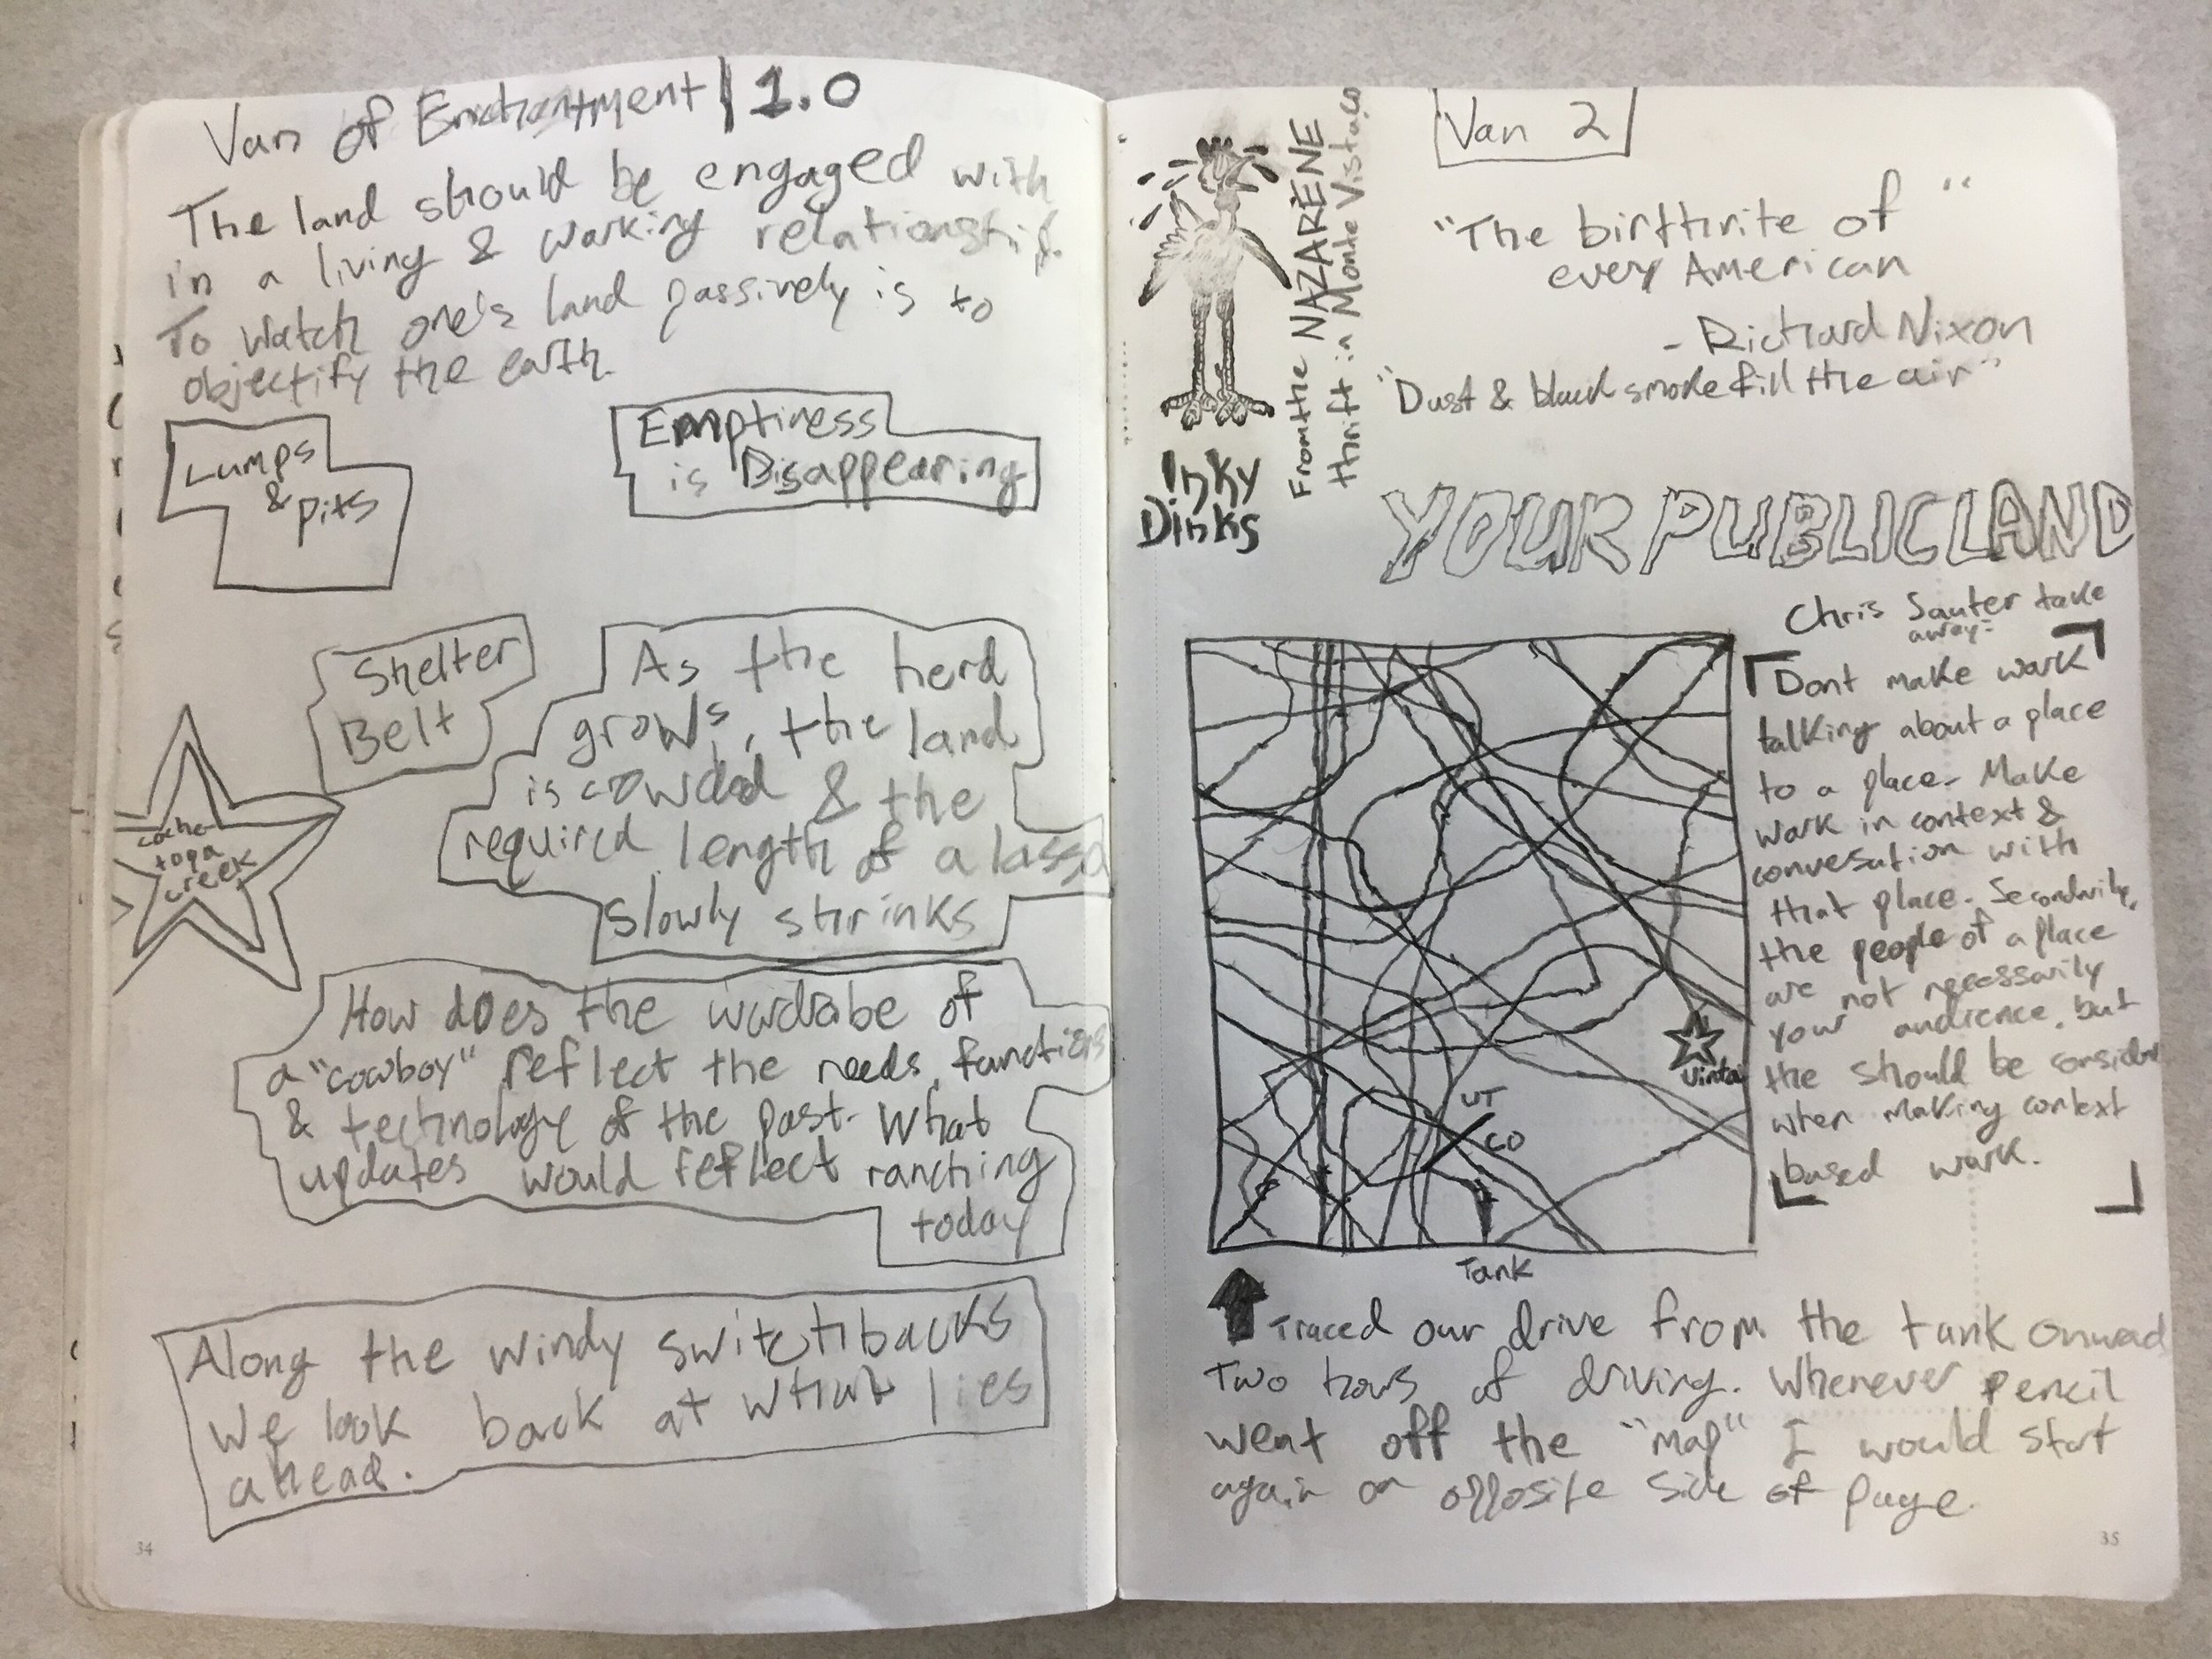 "second half of day 1 and day 2 in the van. Highlighted ideas and quotes, thought about the relationship between form and function regarding the West (specifically a lasso) and some can doodles and sketches including a road""map""."